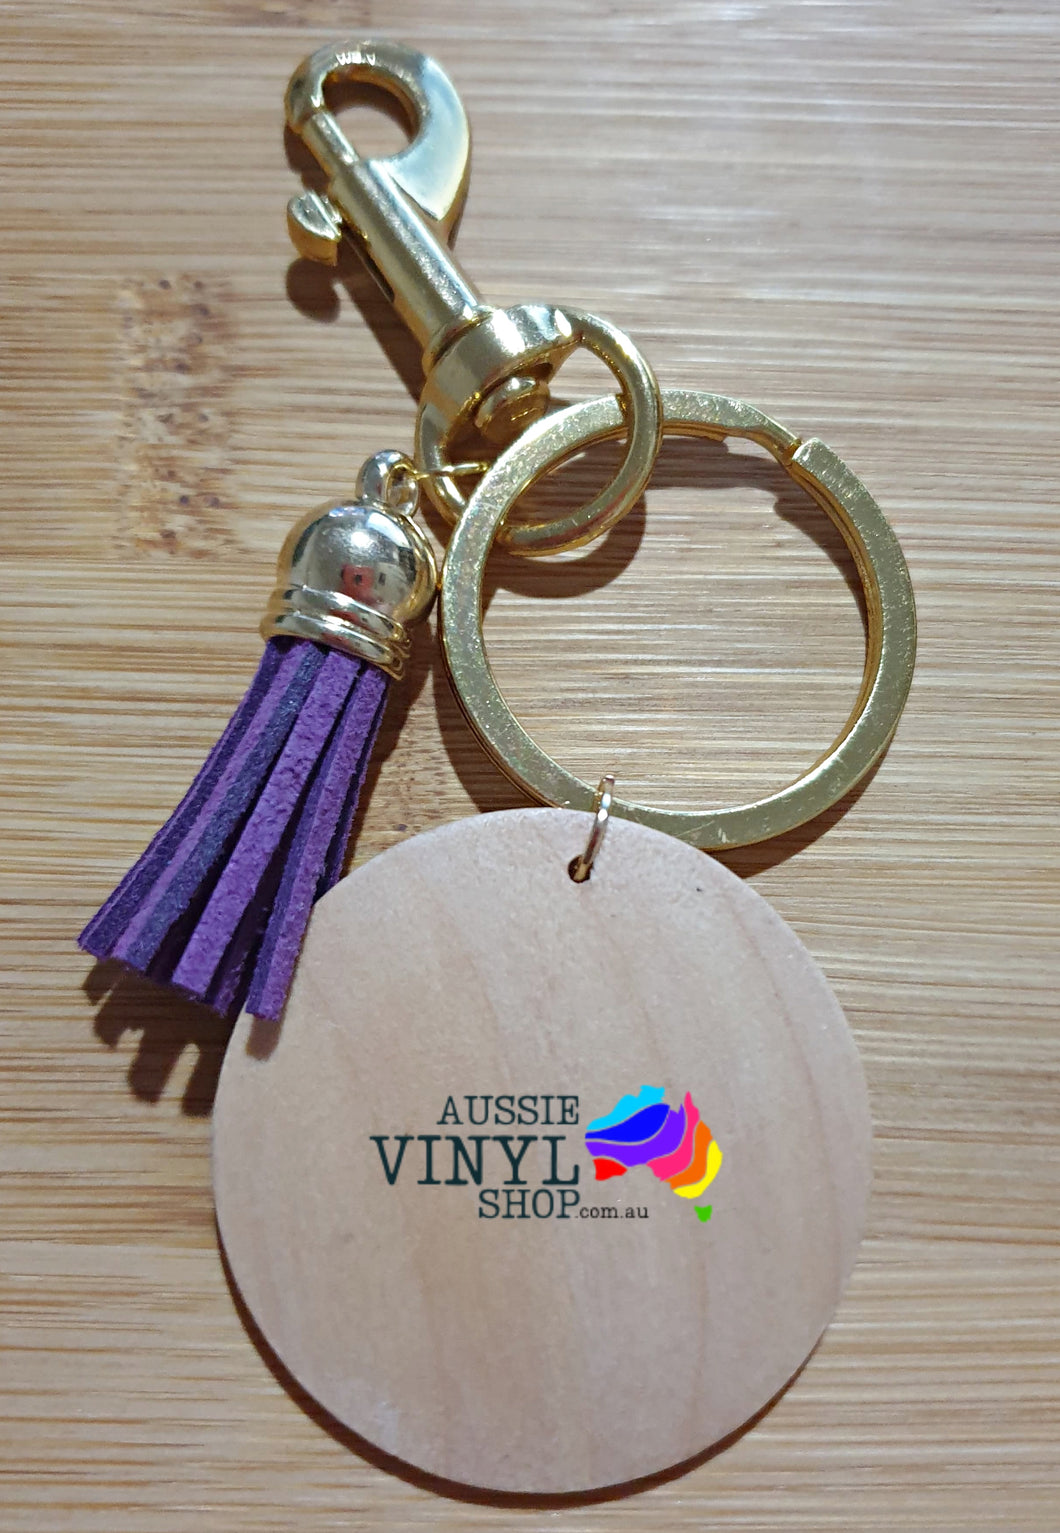 PRETTY TASSEL KEYRINGS WITH ROUND WOODEN DISC BLANK